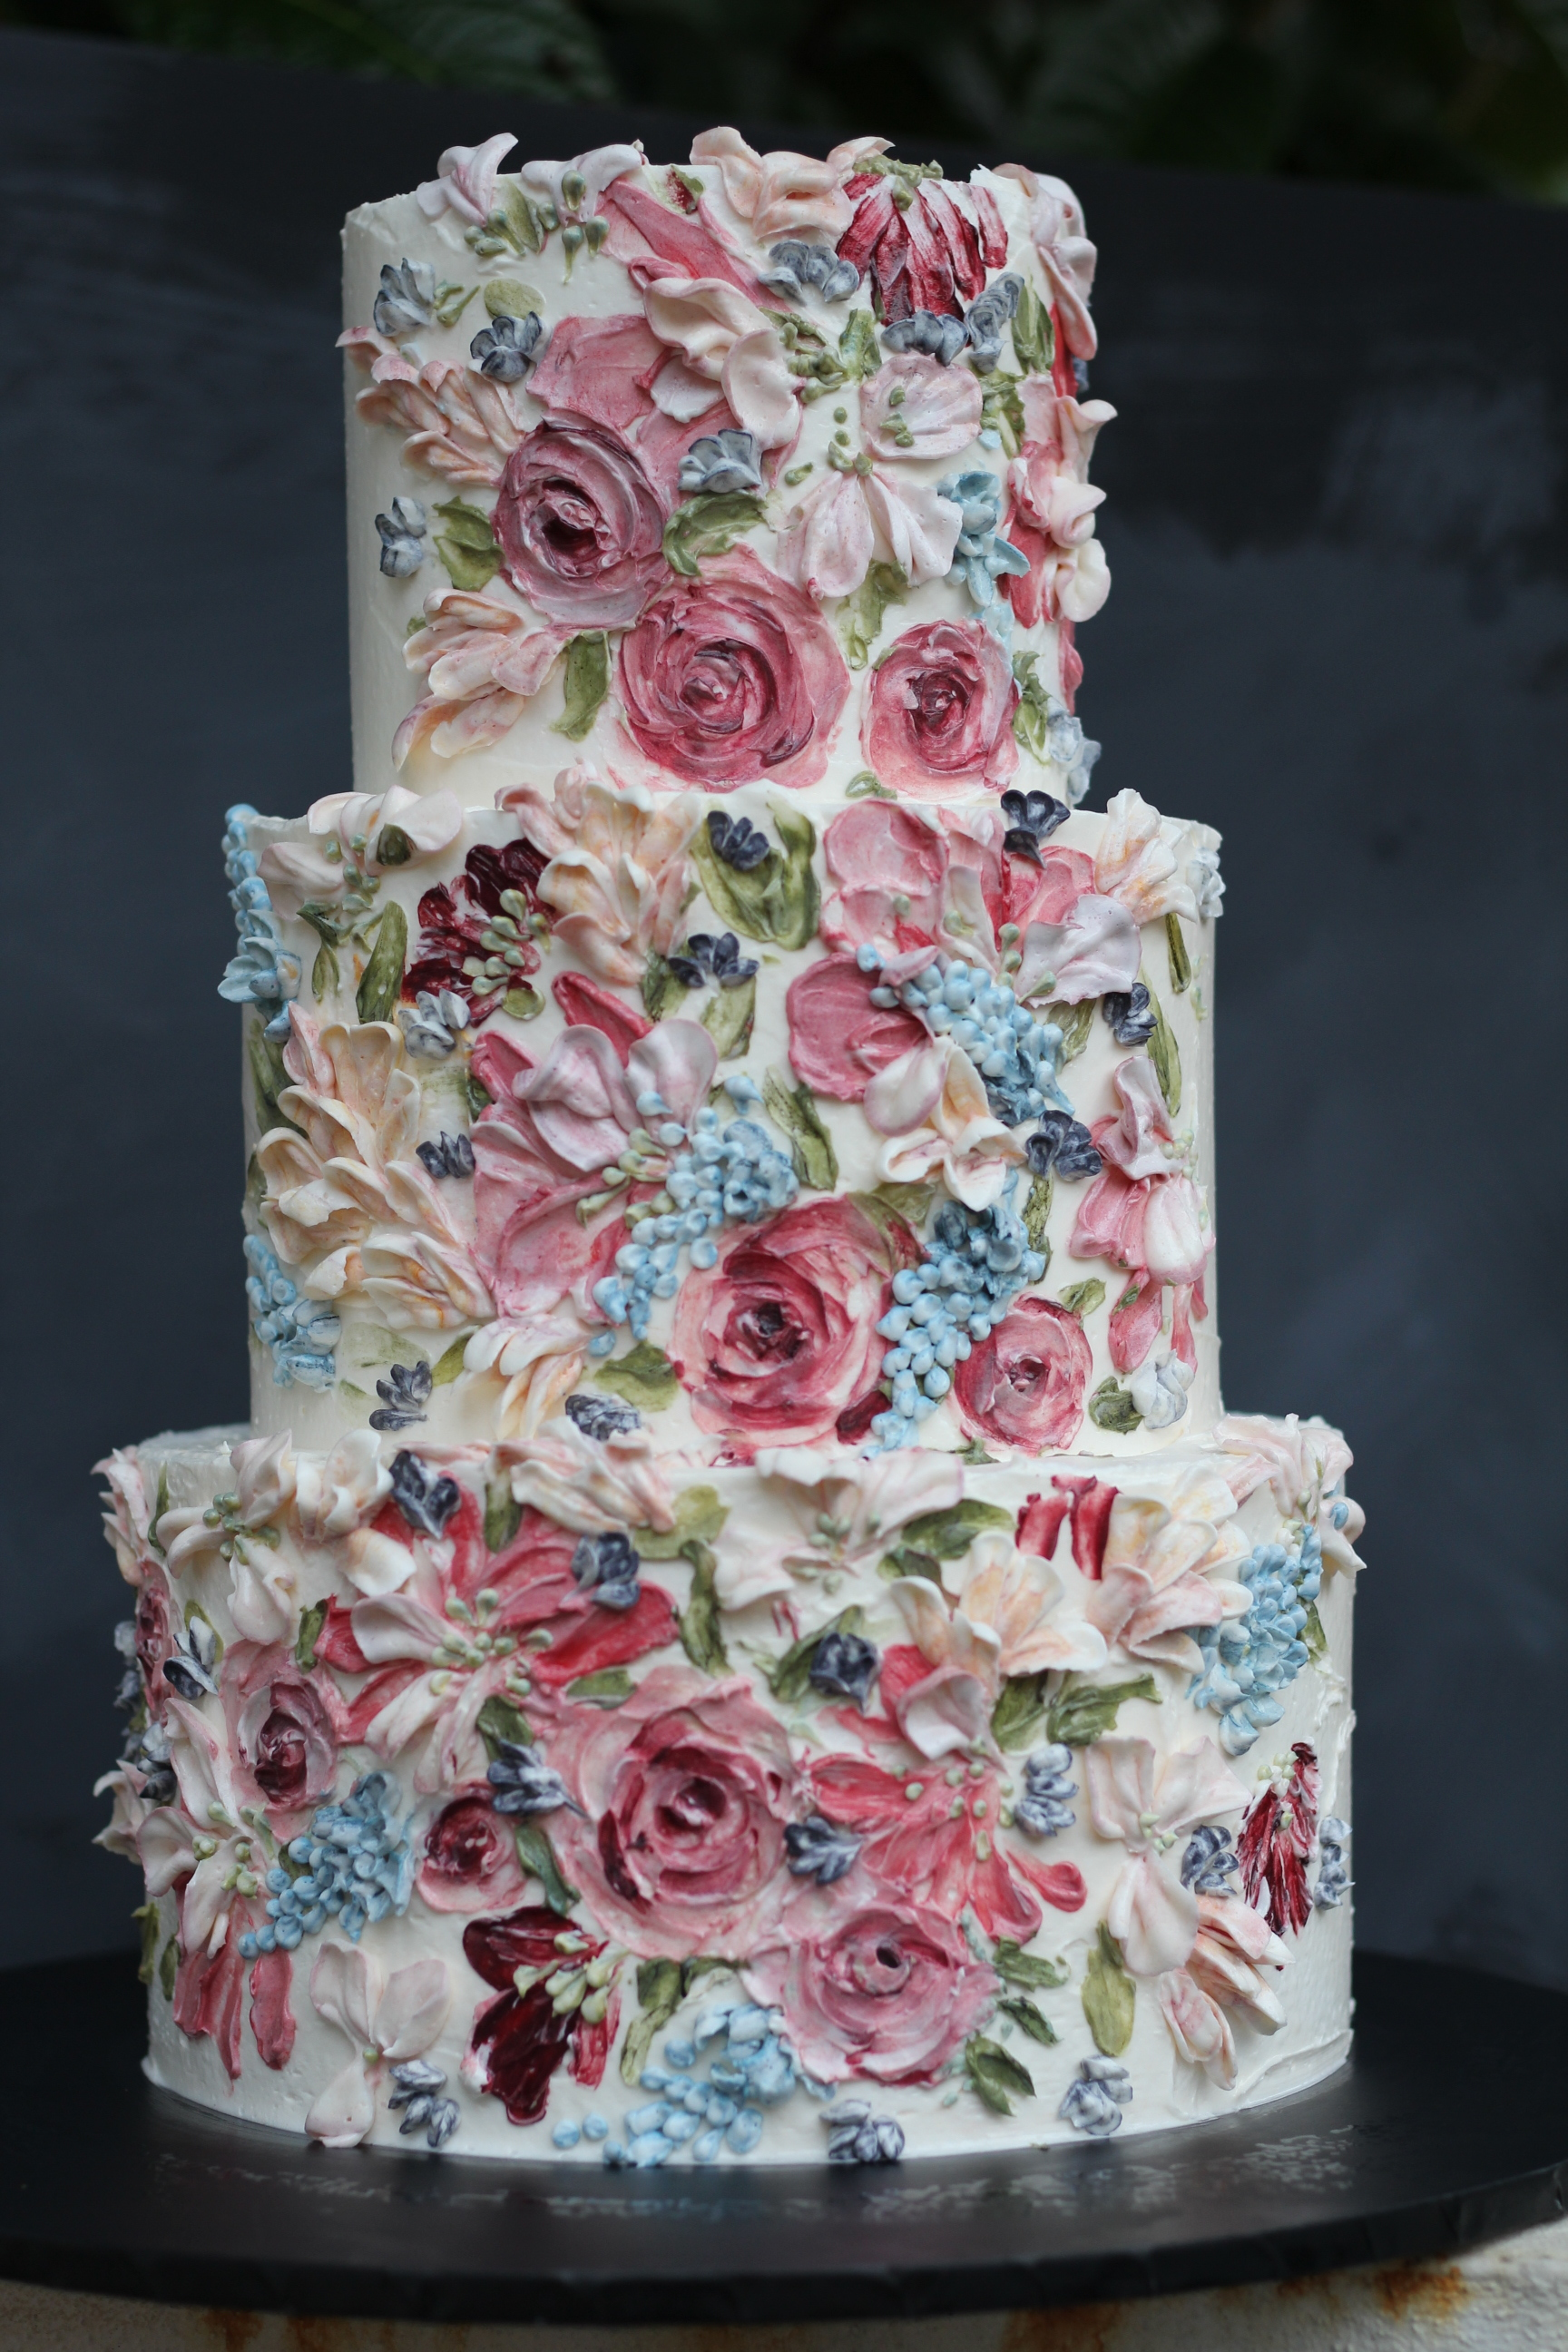 A three tier wedding cake serving 100